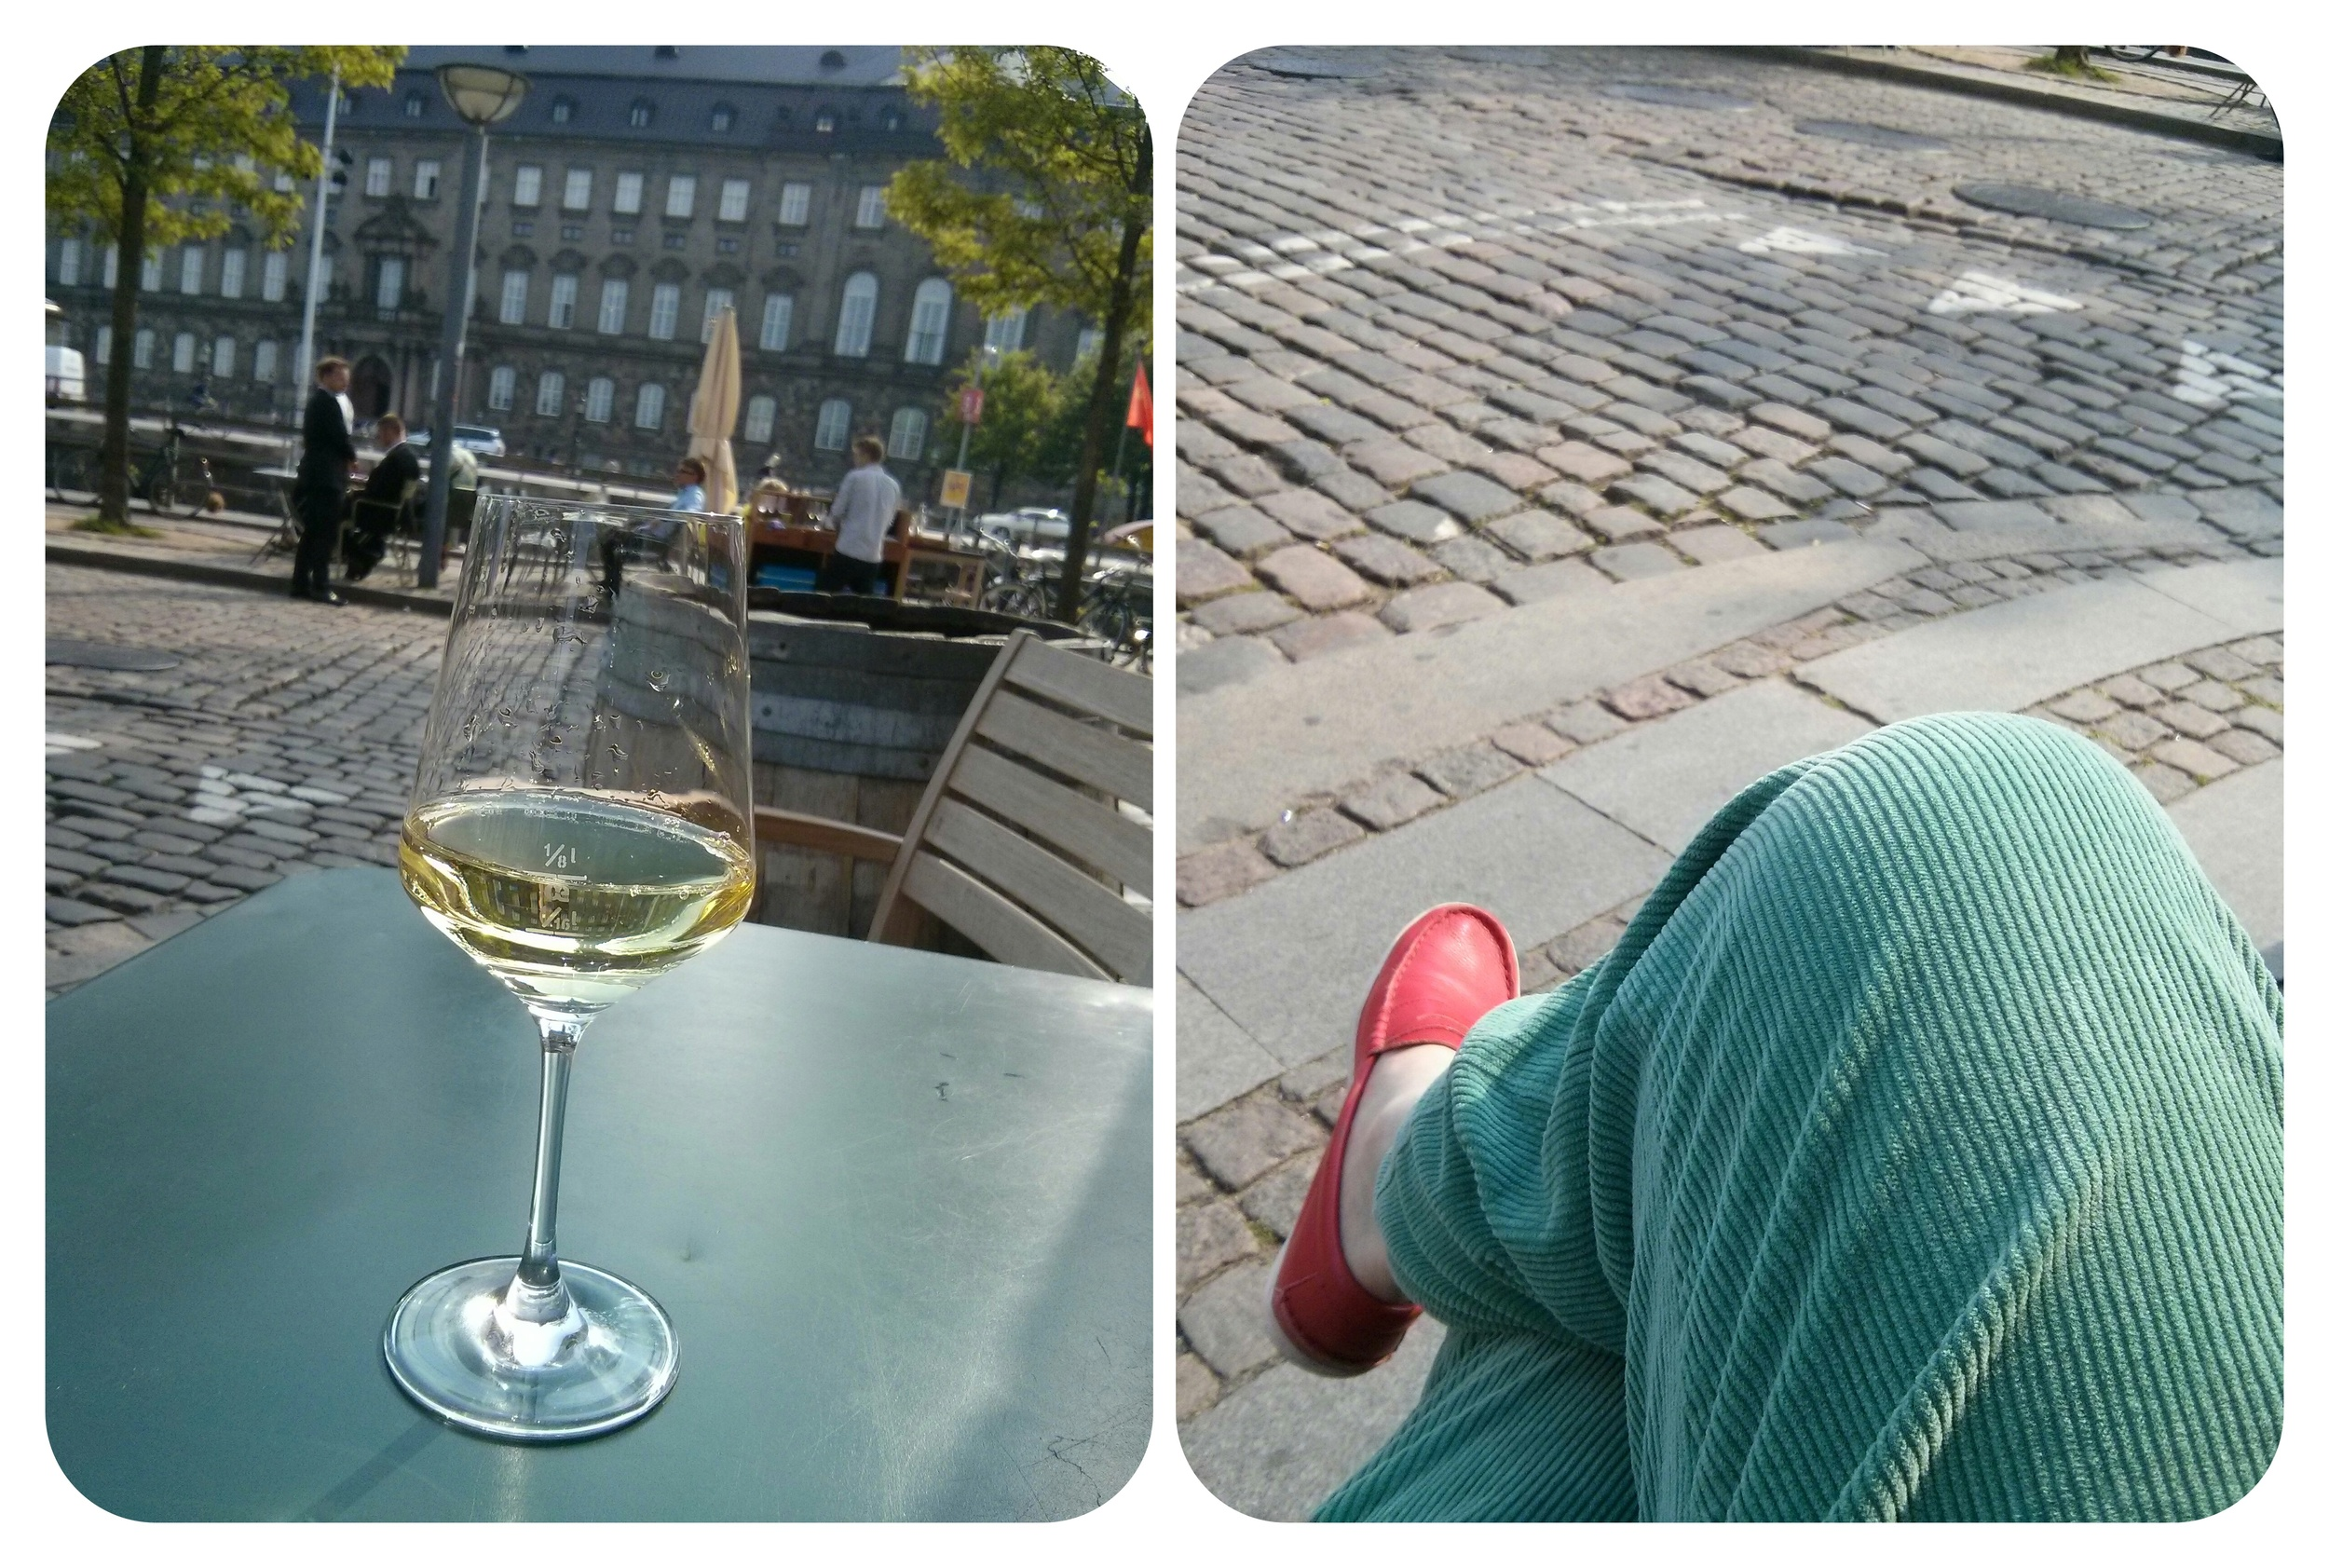 a glass of expensive white wine, relaxing,enjoying the view to the government building christiansborg and as well the canal. good to be here.